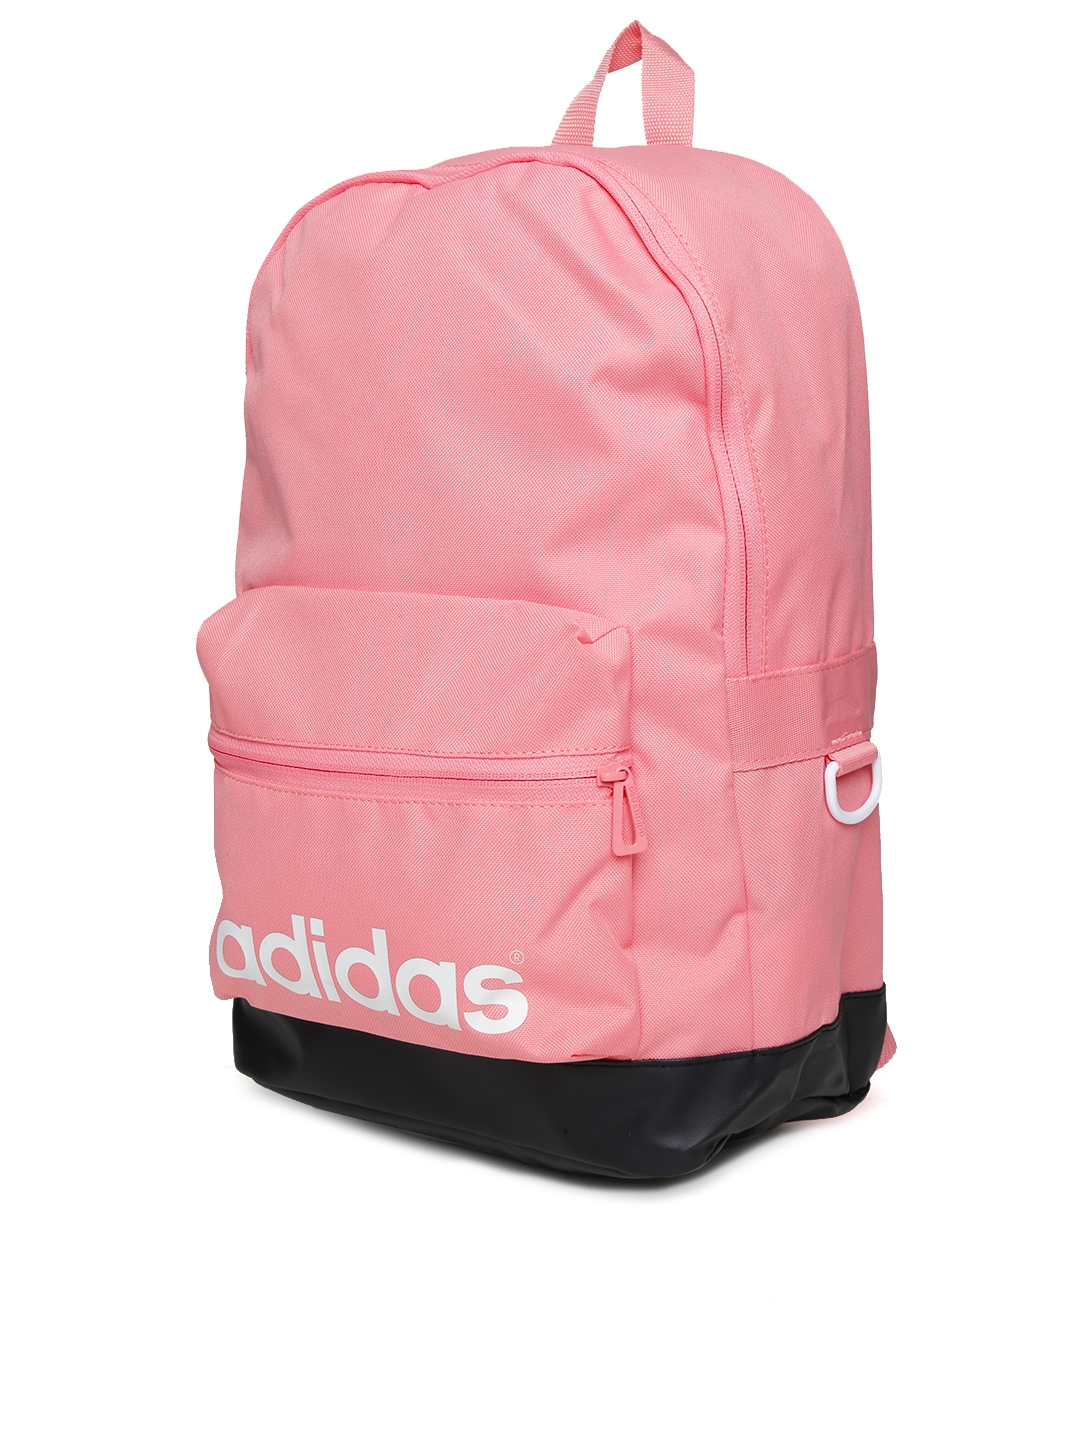 Buy ADIDAS NEO Men Pink DAILY Backpack - Backpacks for Men 1504645 ... ed28603fef3f5